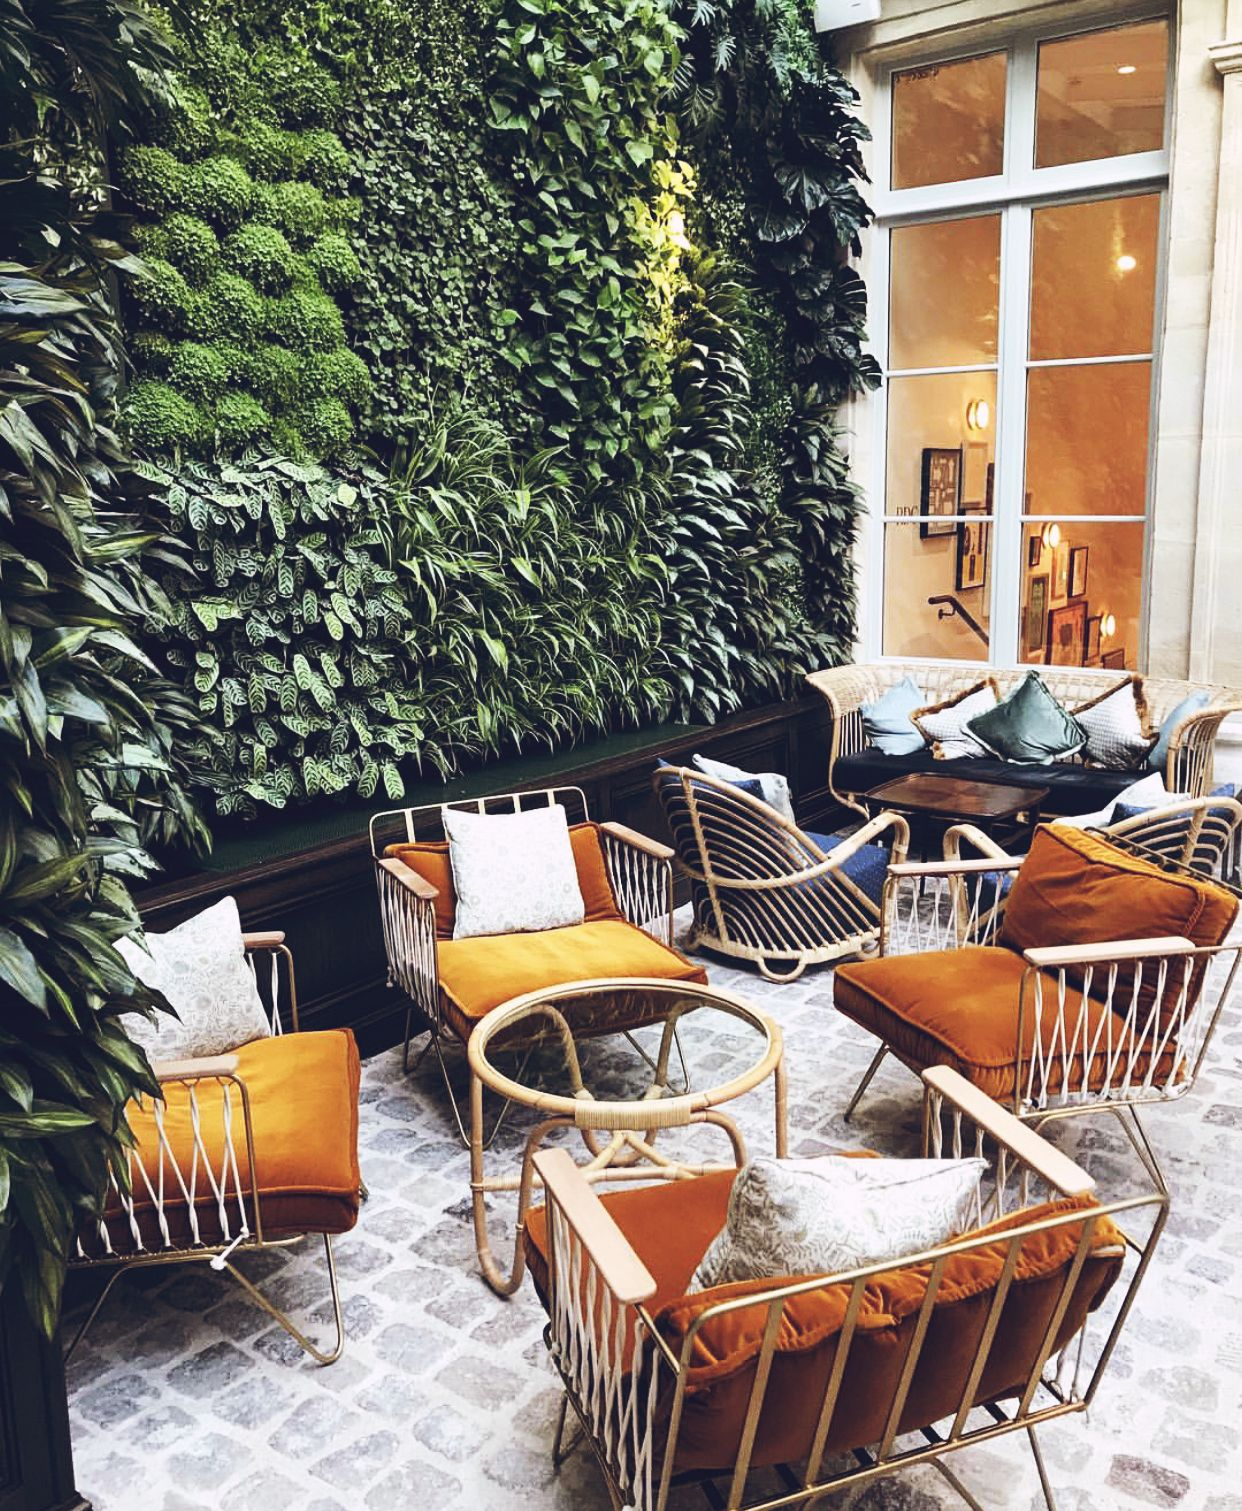 Garden Seating Ideas For Your Outdoor Living Room: 2 Hotels To Consider For Your Next Trip To Paris